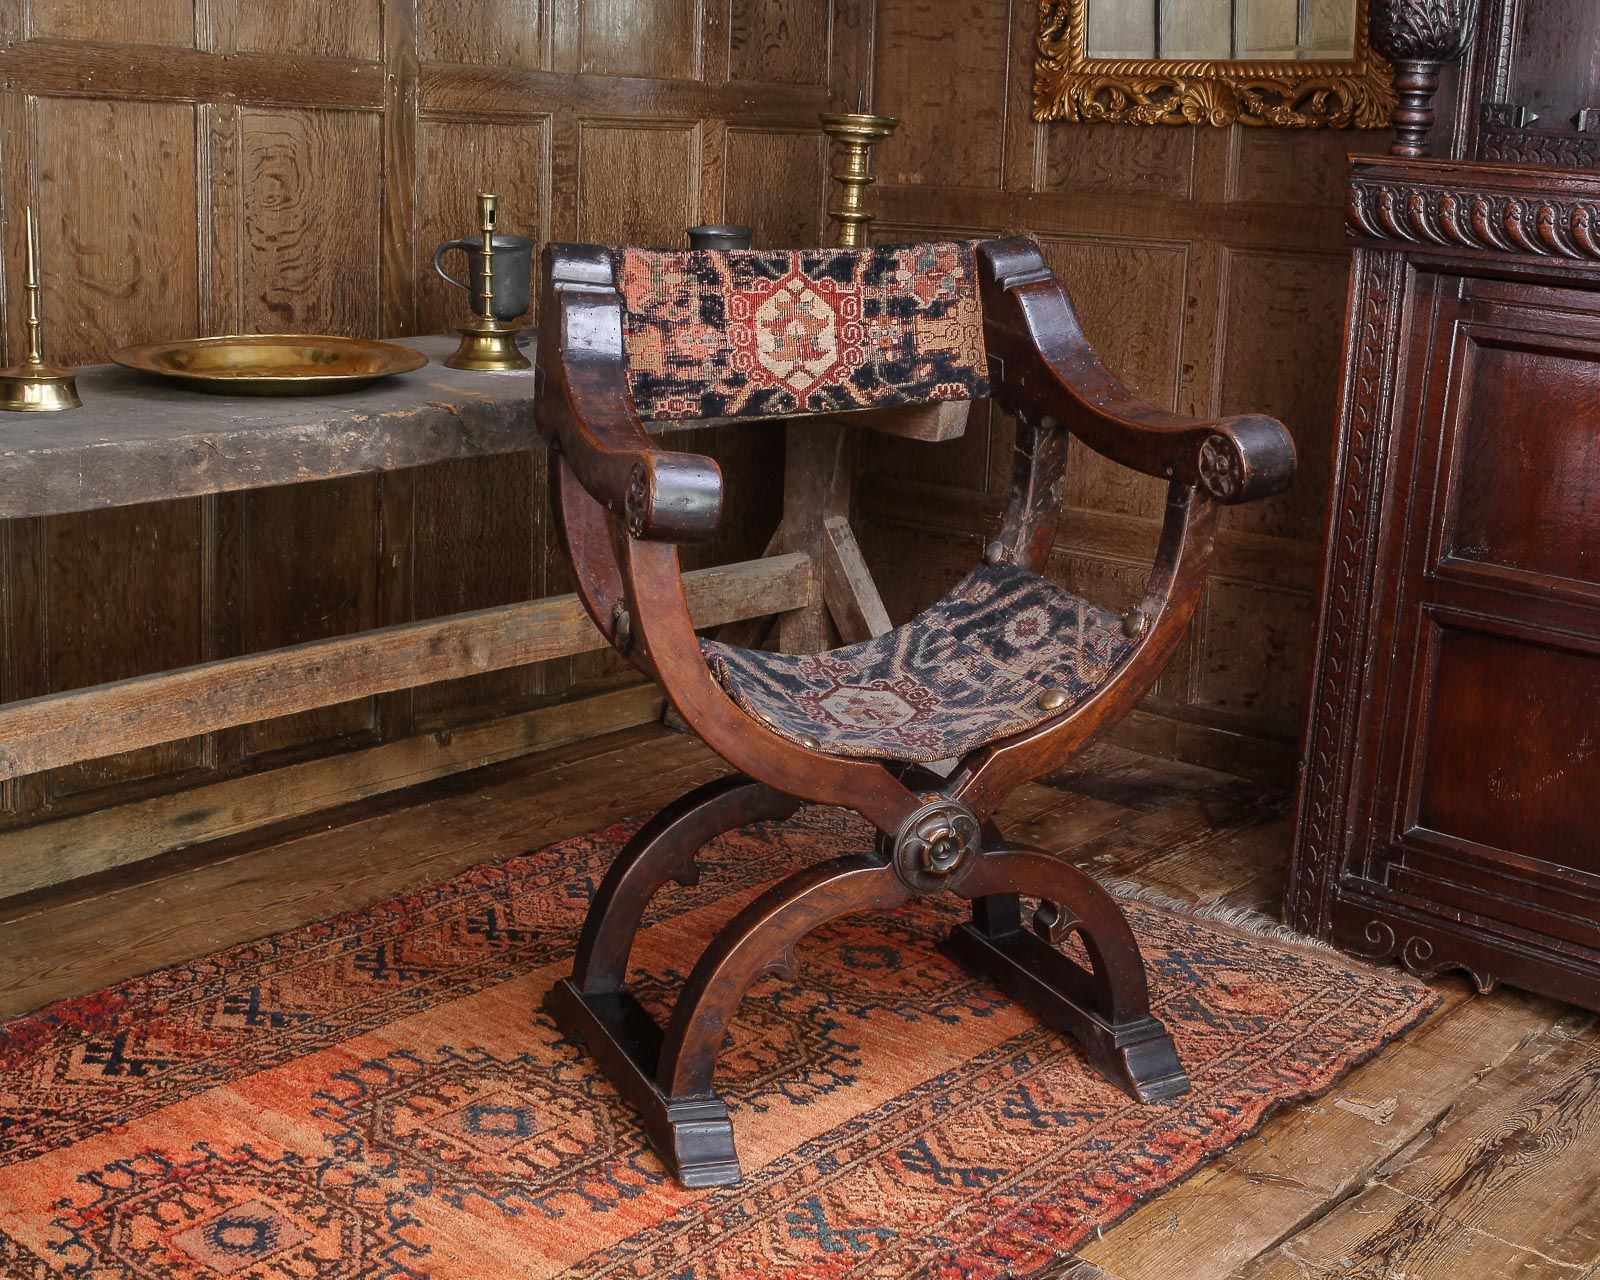 16th century X frame chair in 2020 Medieval furniture